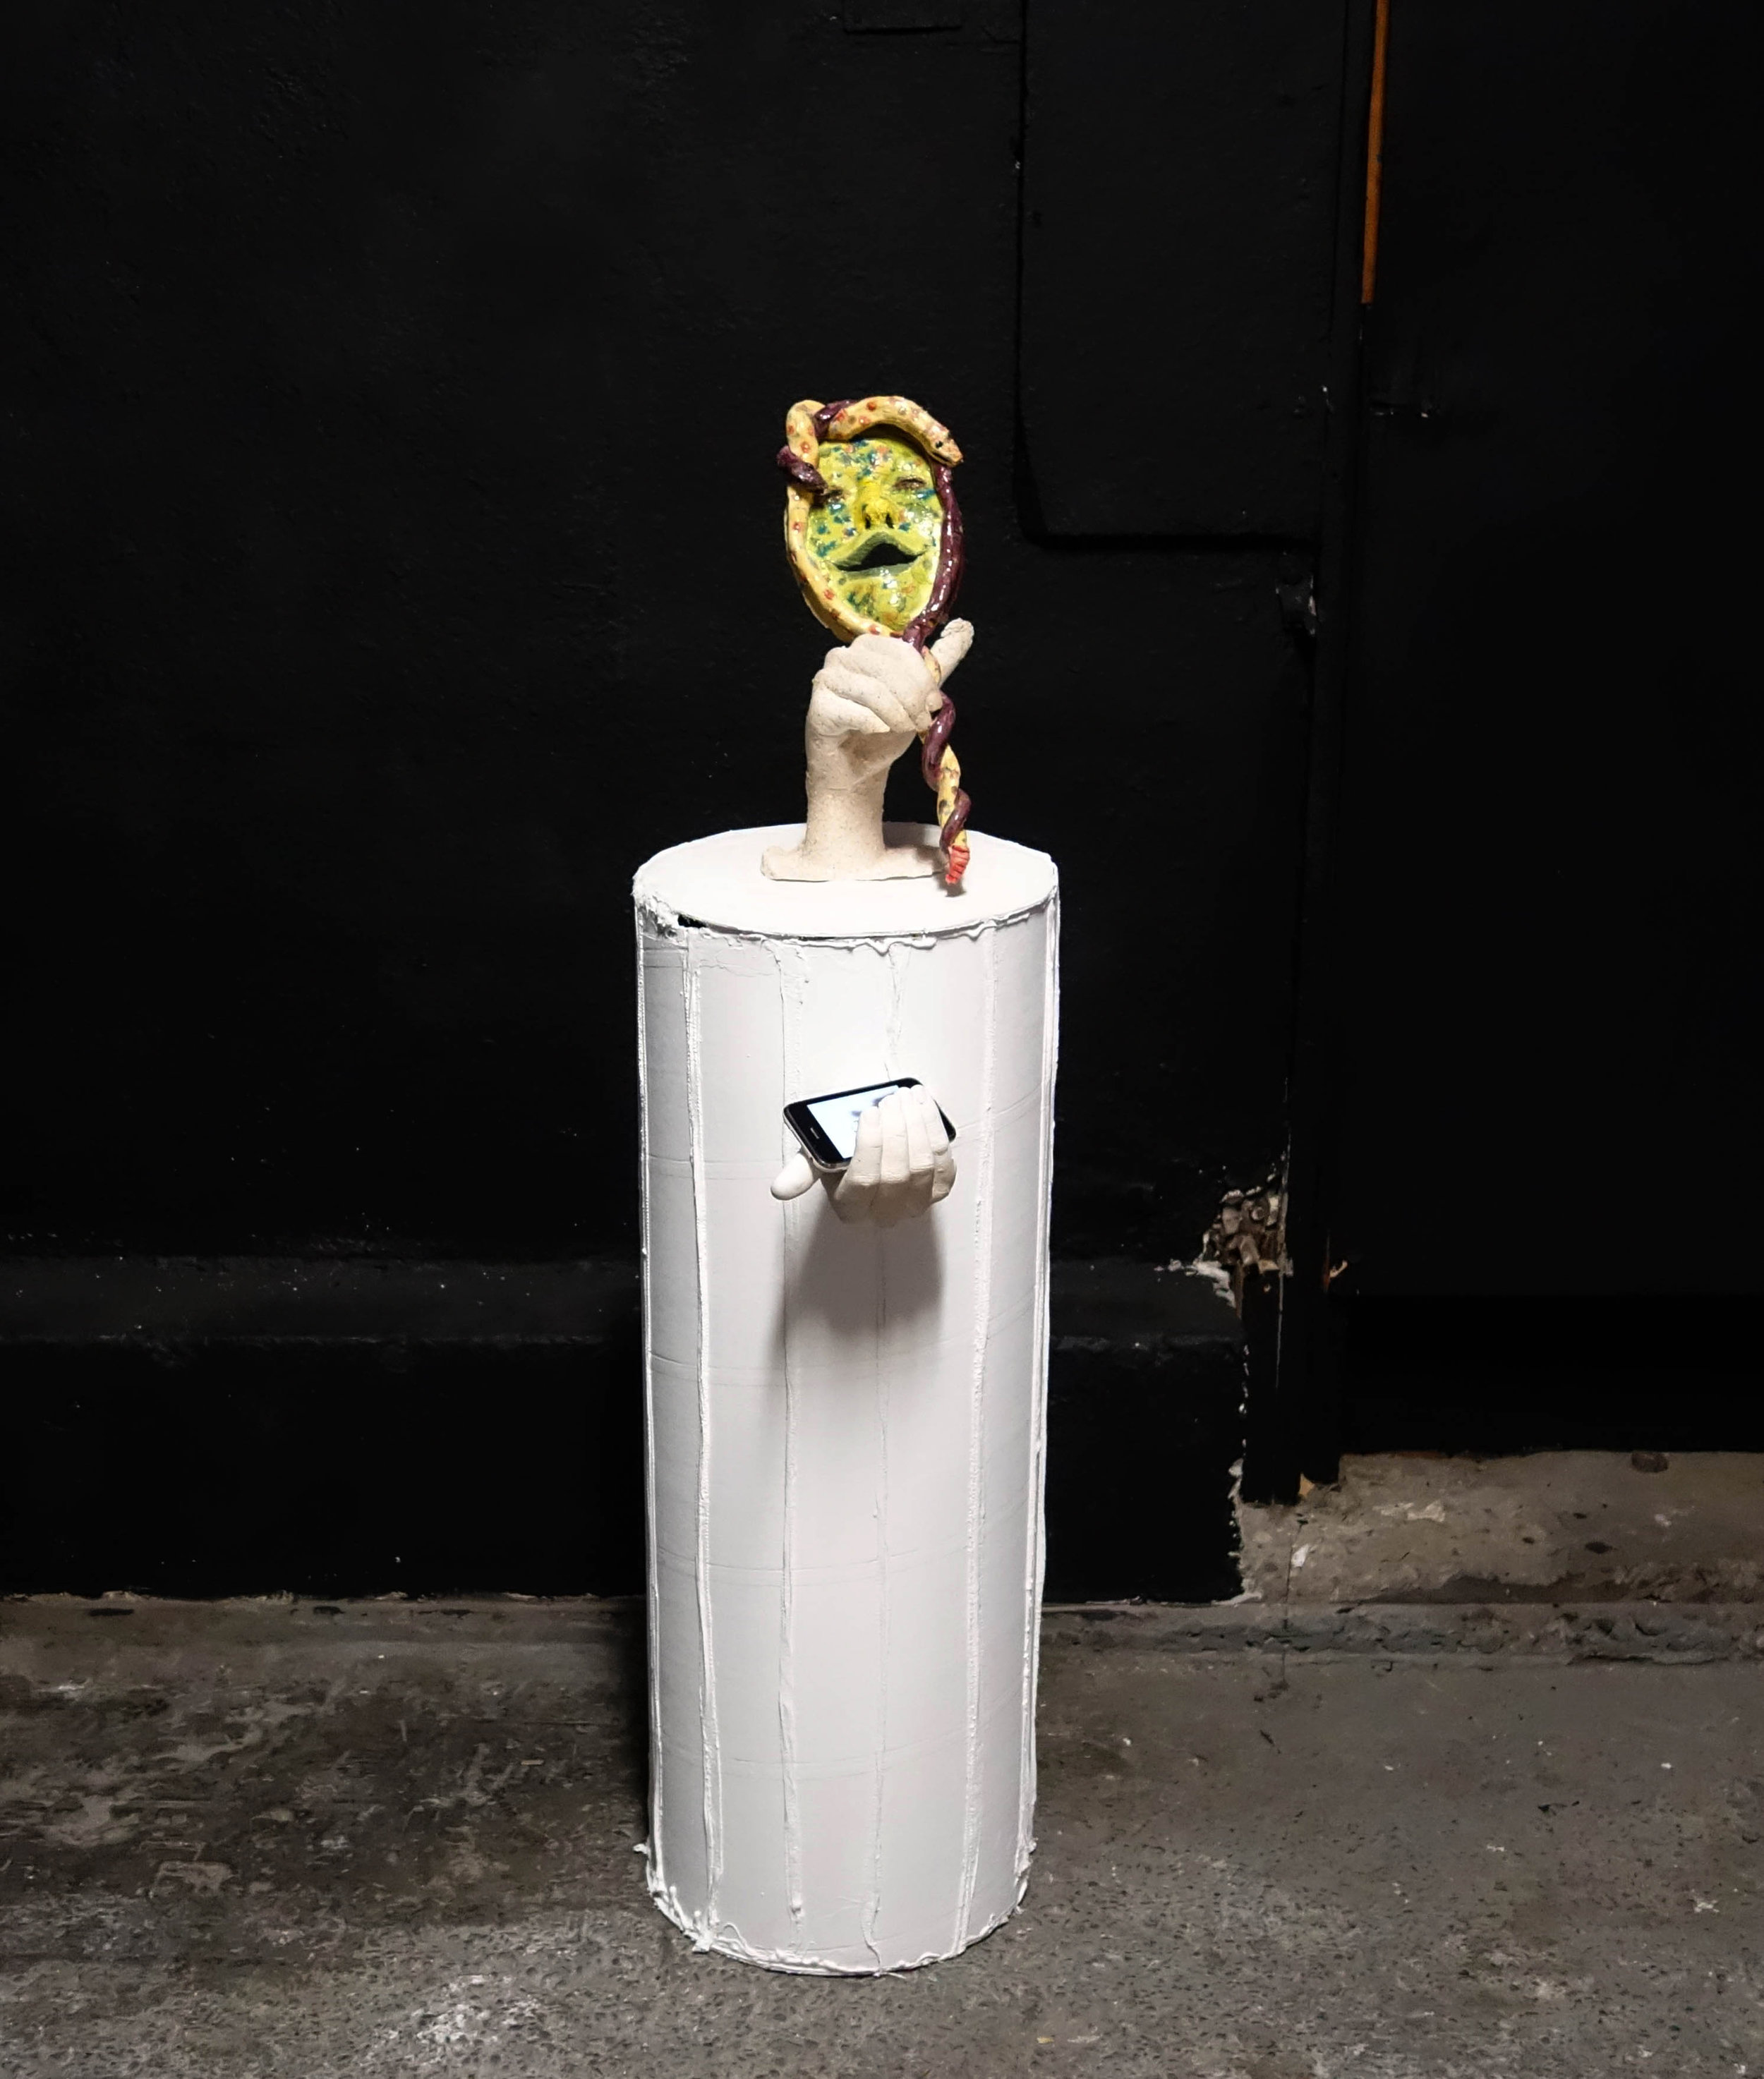 """Molly Shea, """"Perseus is a Dick: Everyone always forgets Medusa gave birth to Pegasus"""", 2018. Dimensions variable. Ceramics, quick-tube column & an iPhone 1."""